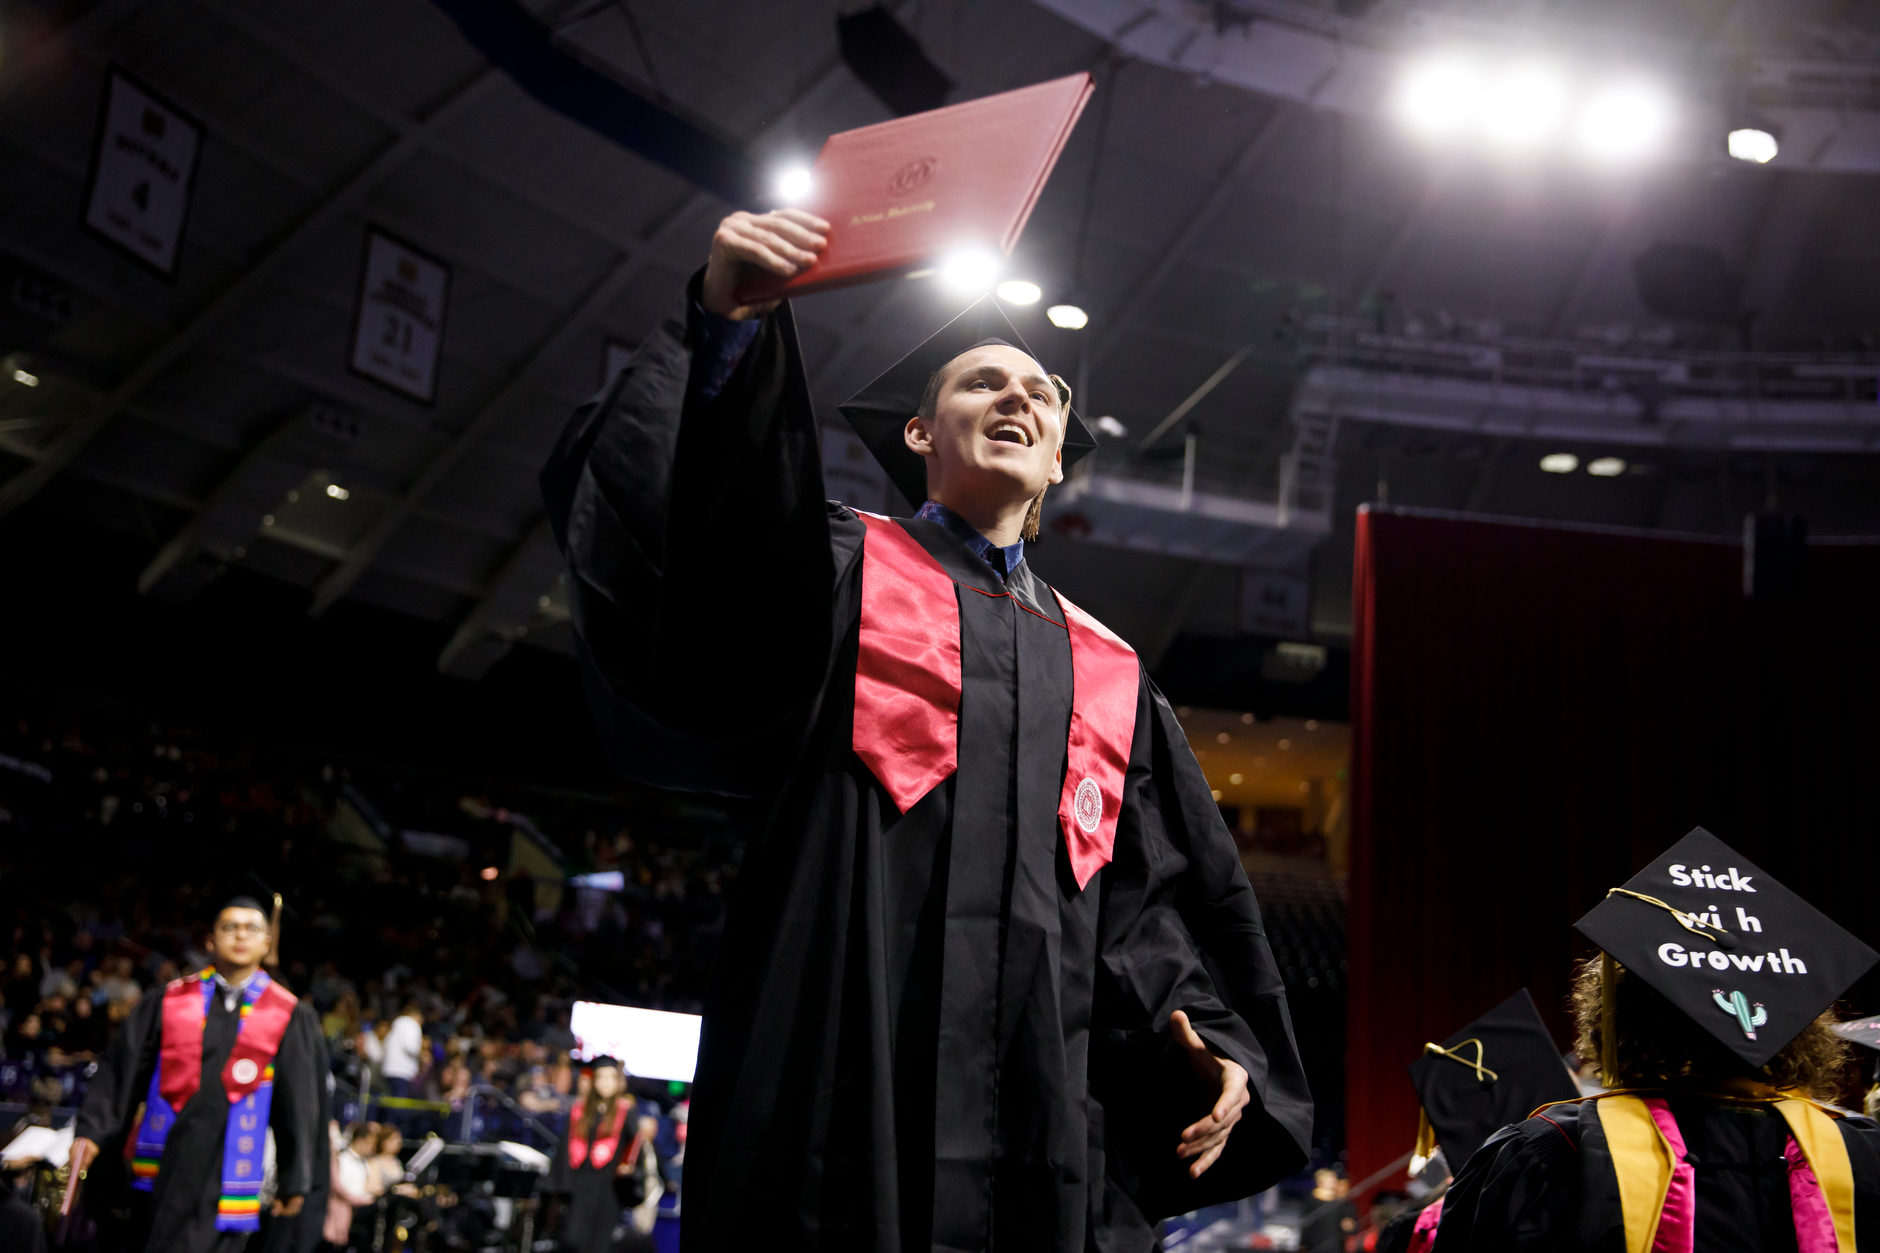 A graduate cheers after receiving his diploma at the Indiana University South Bend Commencement at the University of Notre Dame on Tuesday, May 7, 2019. (James Brosher/Indiana University)